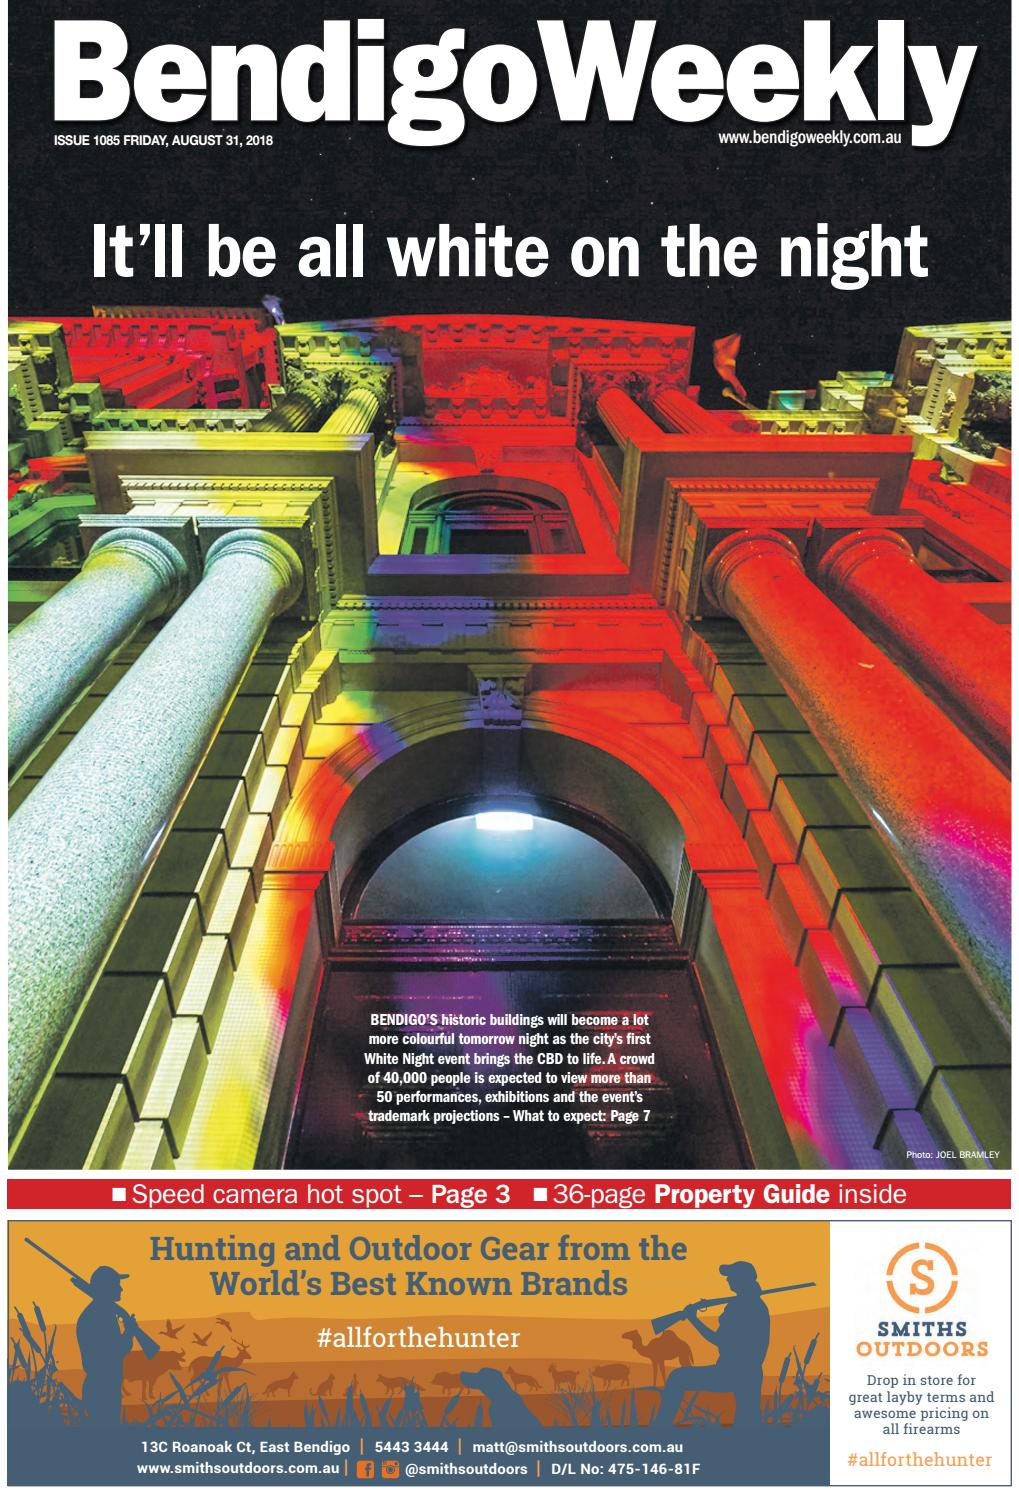 Bendigo Weekly 1085 by Bendigo Weekly - issuu